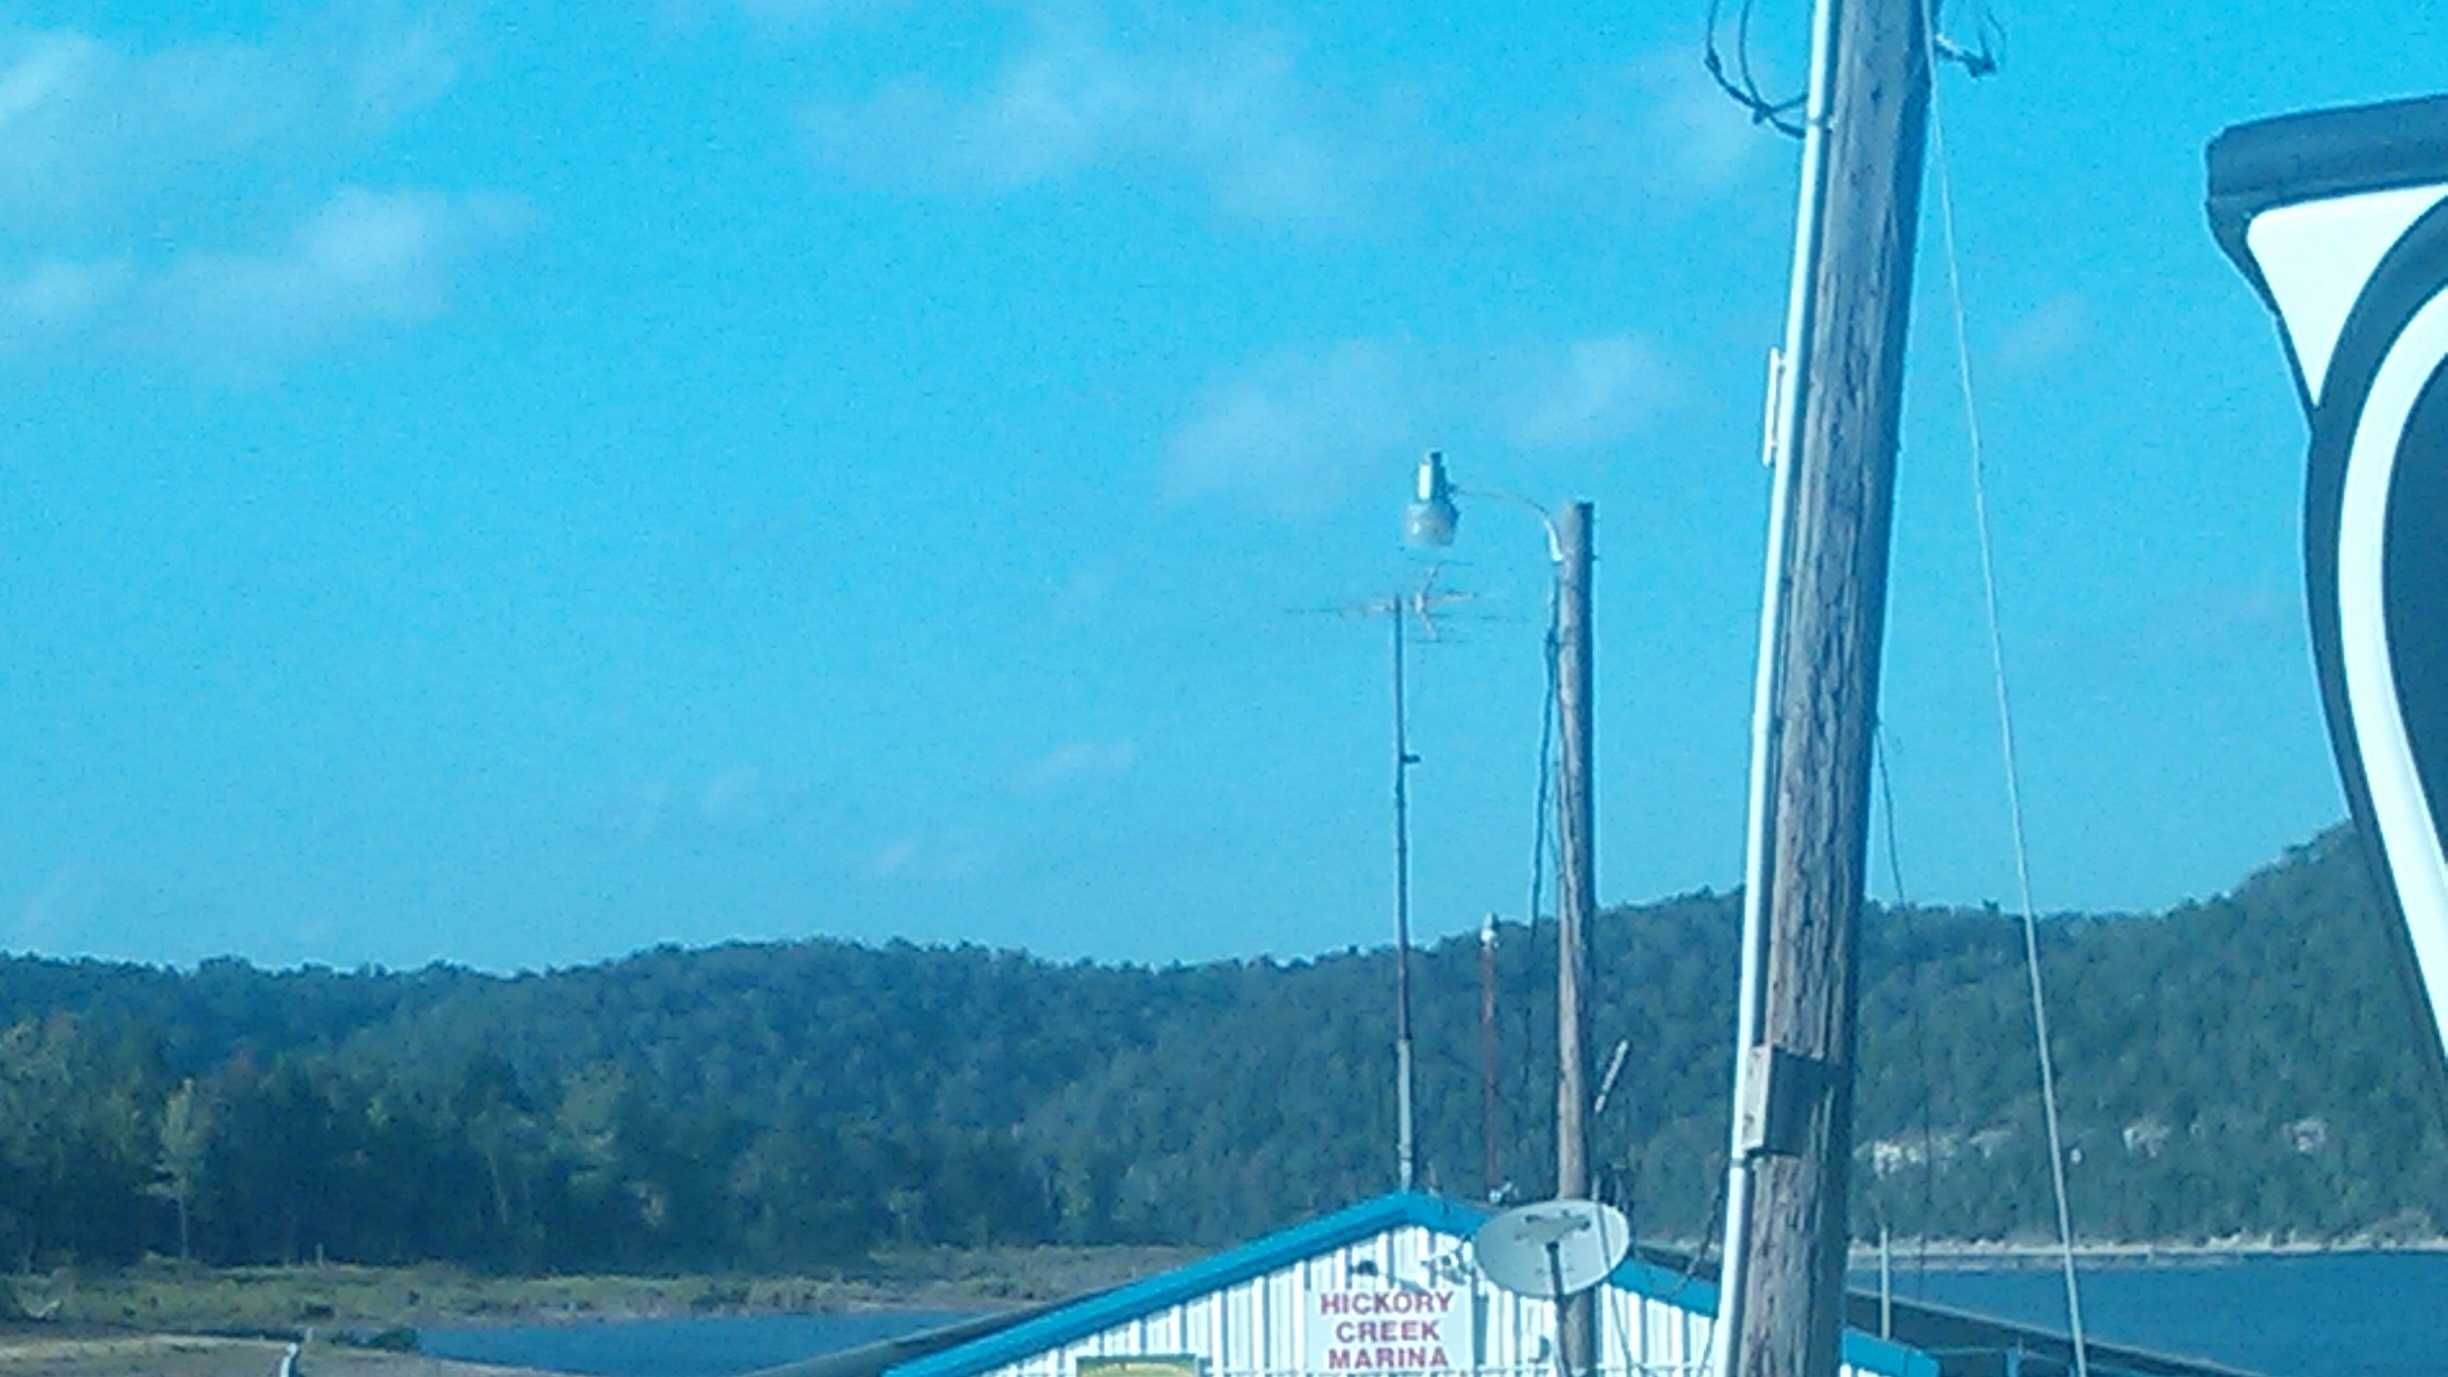 Hickory Creek Marina sees business slip after government shutdown